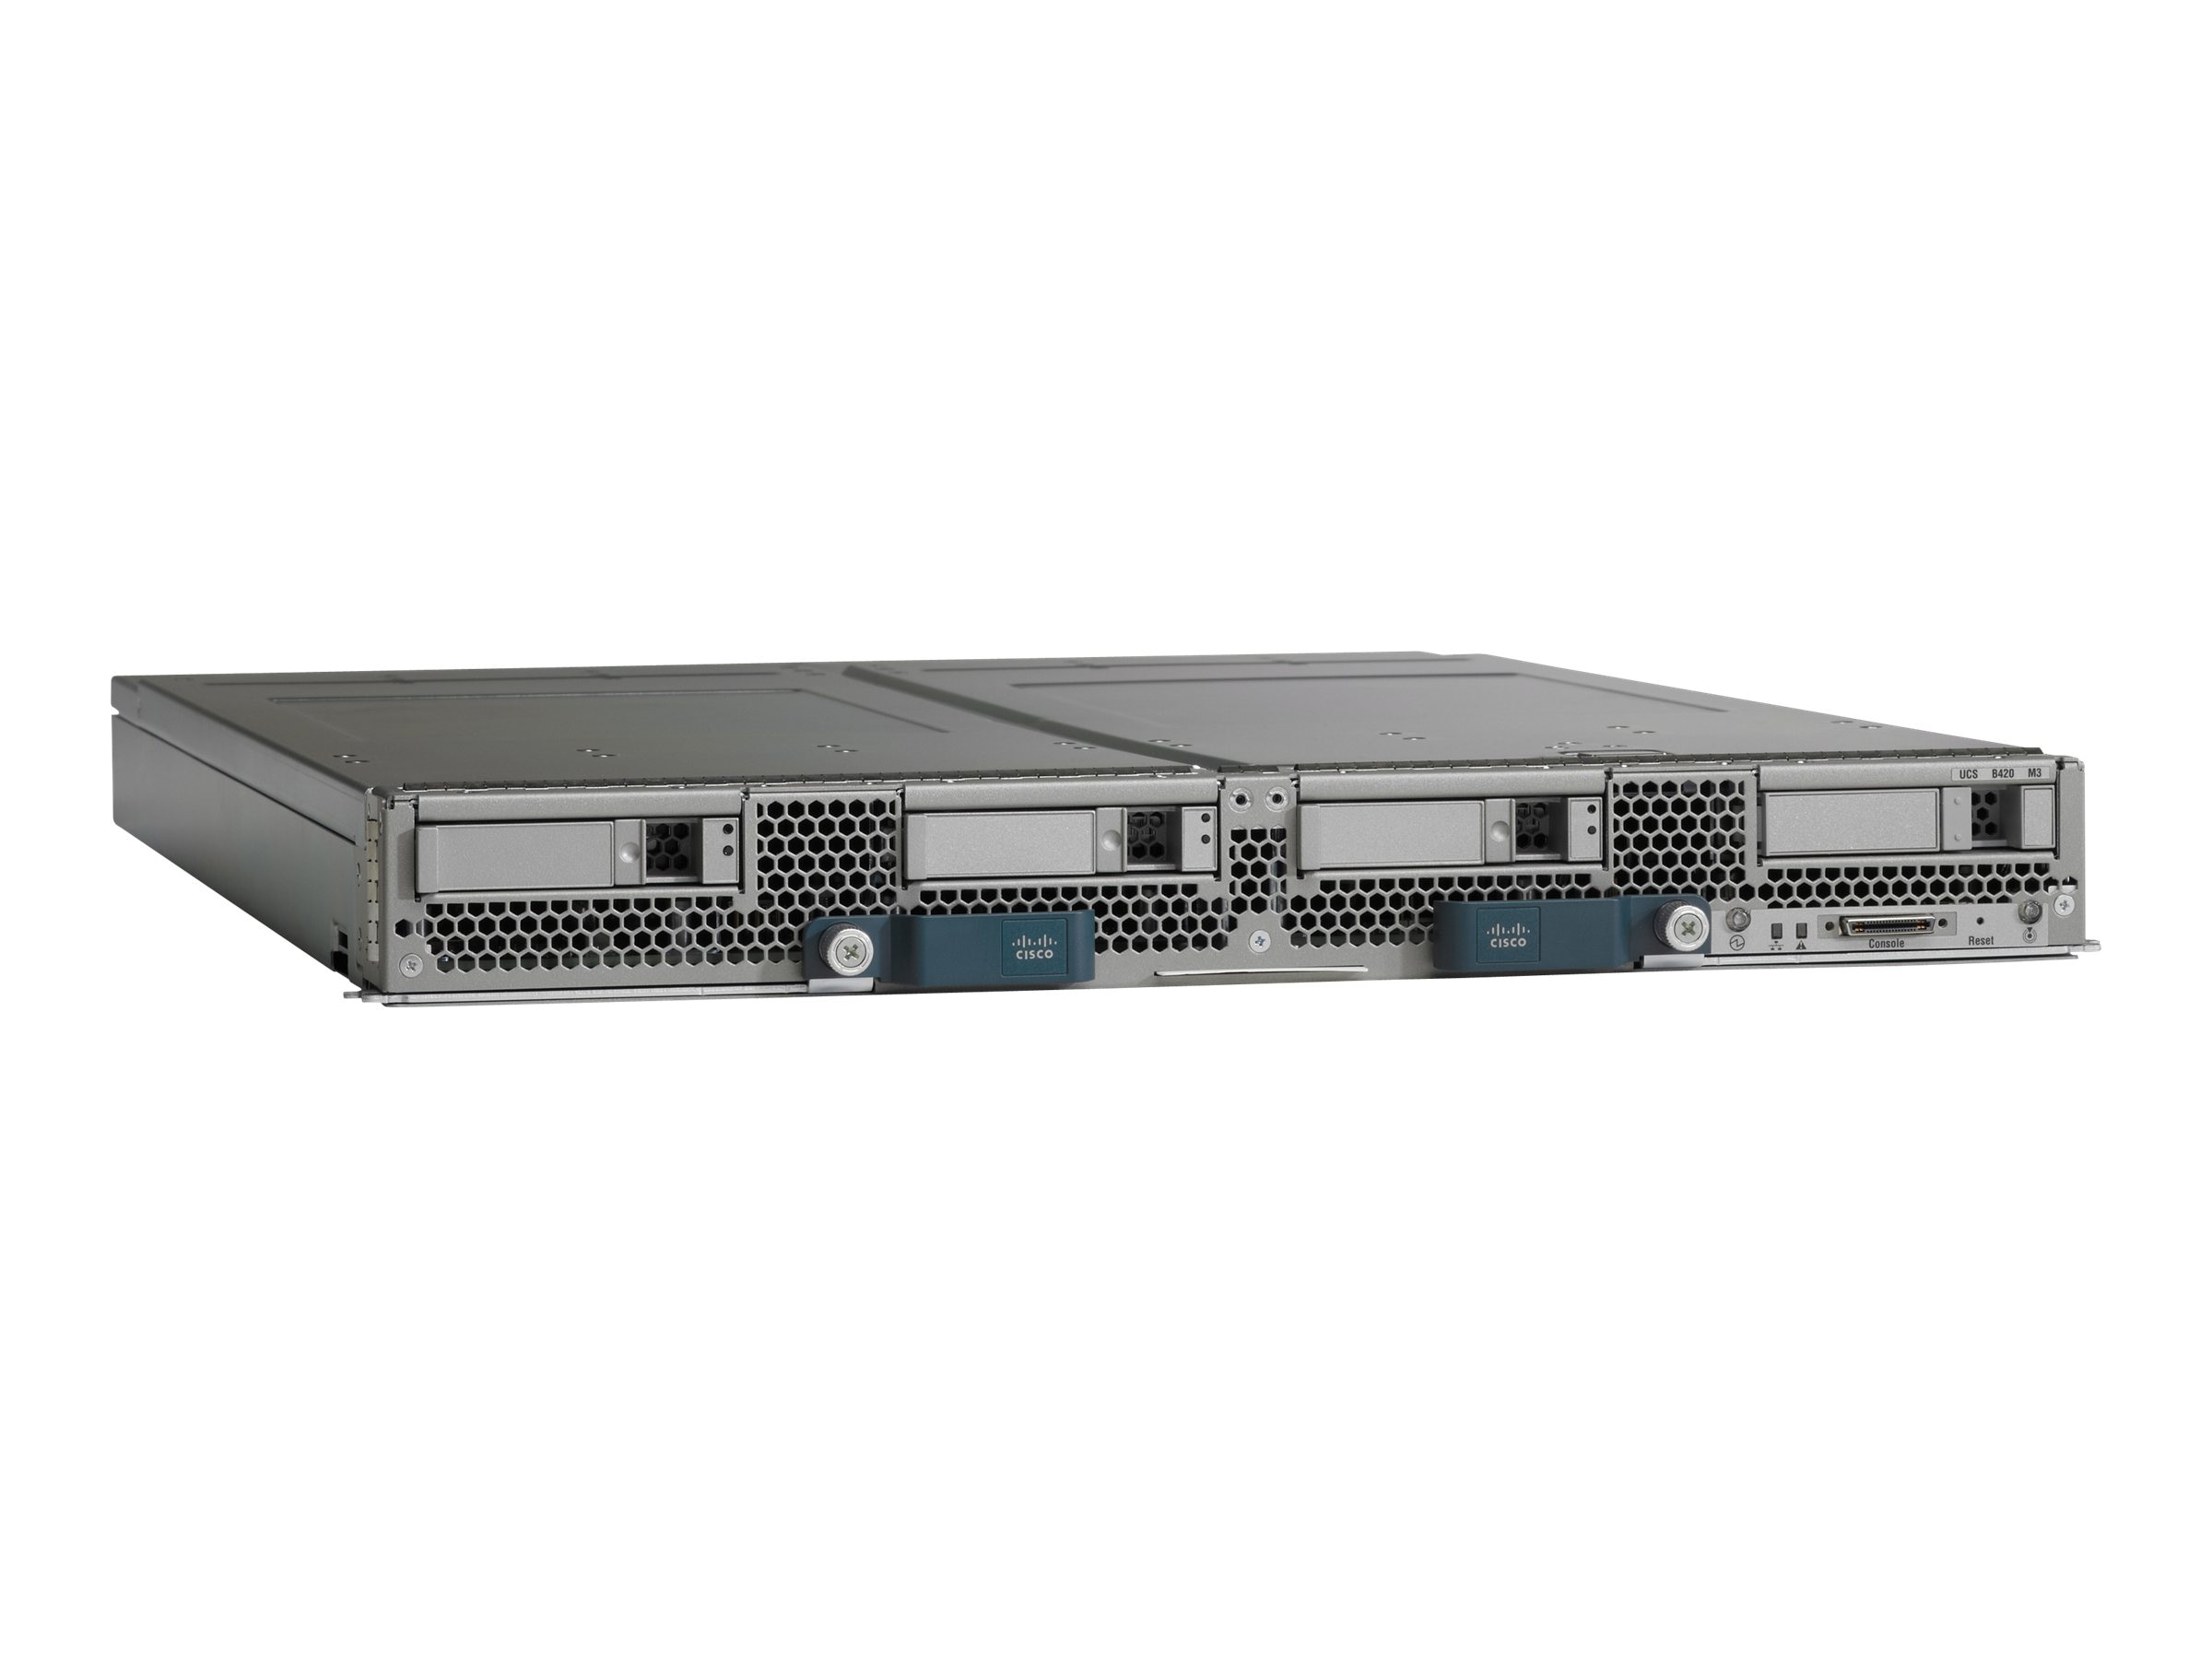 Cisco UCSB-B420-M3-D Image 2